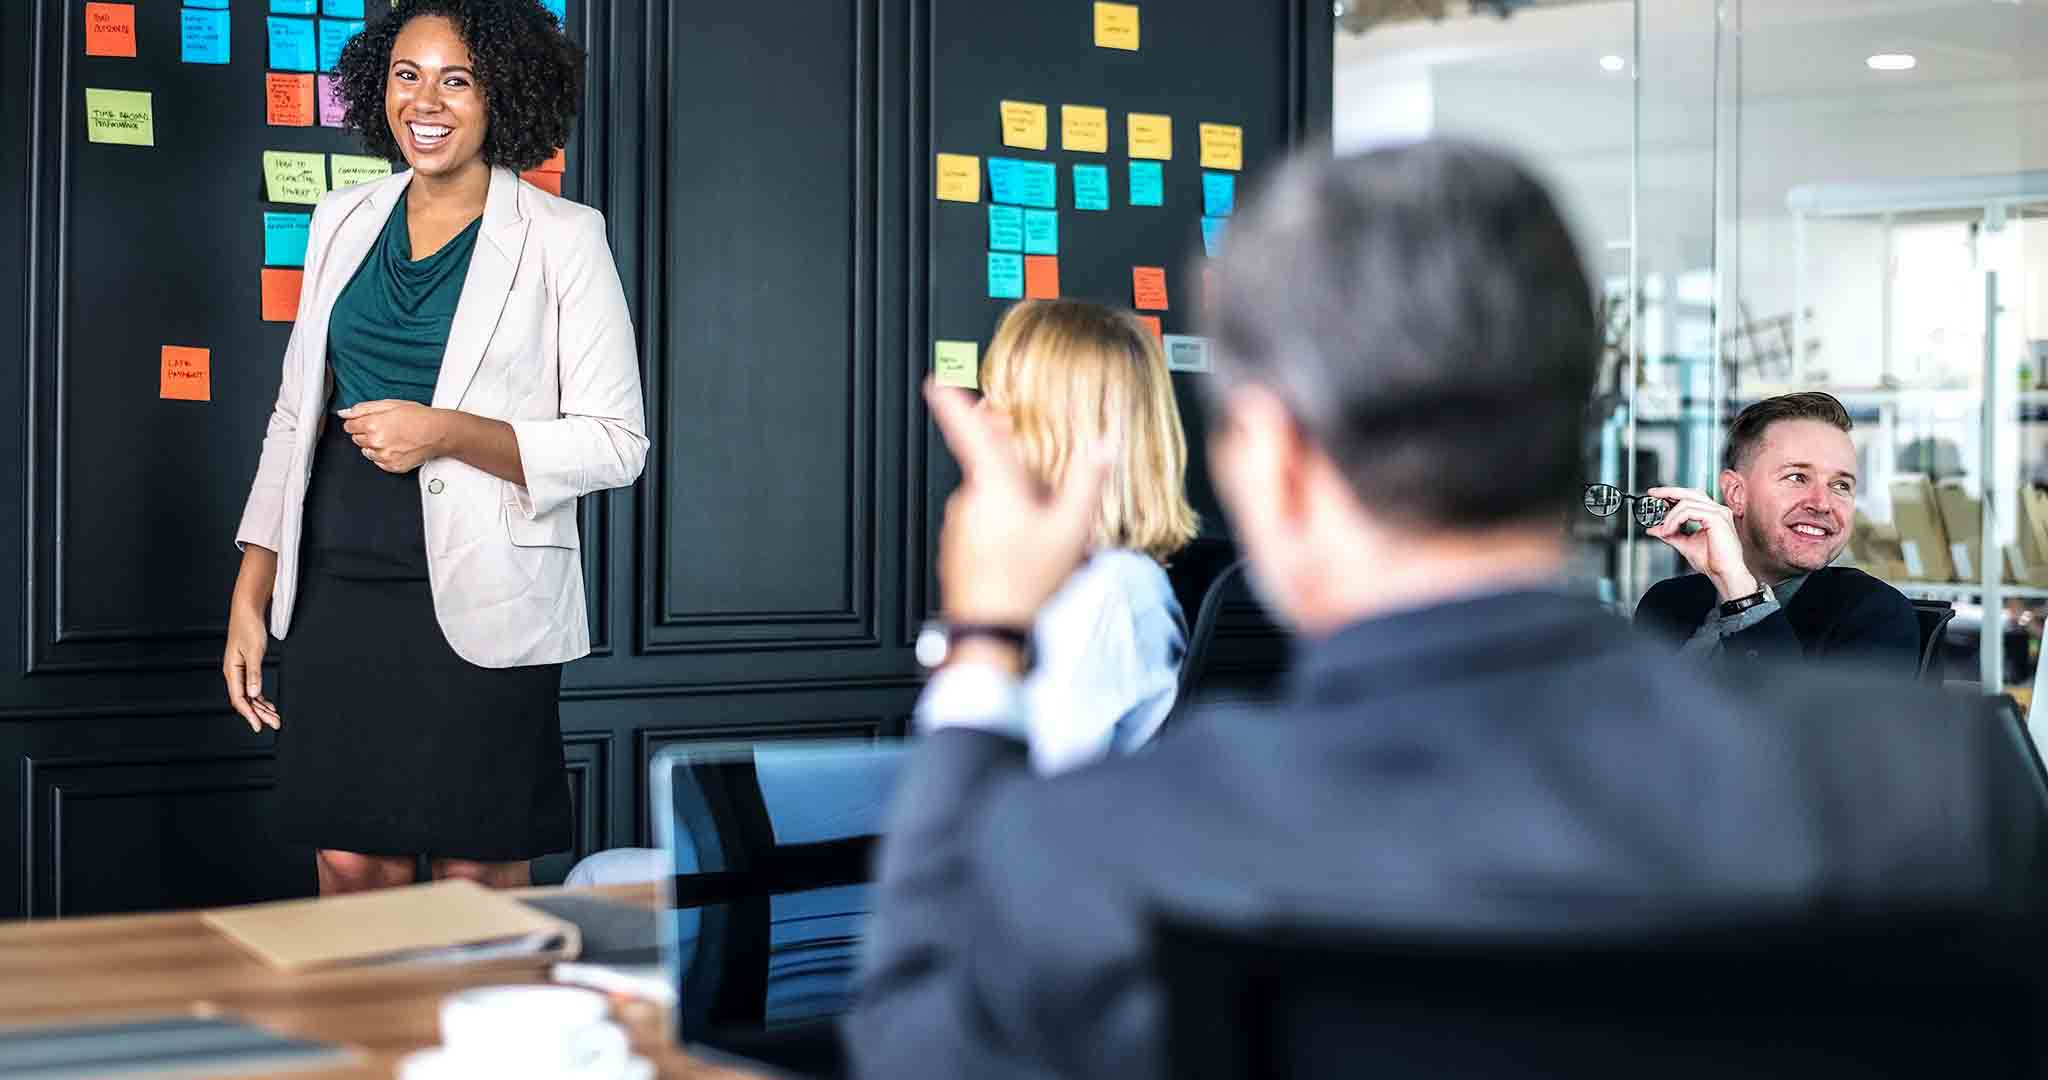 adult brainstorming briefing presentation stock photography